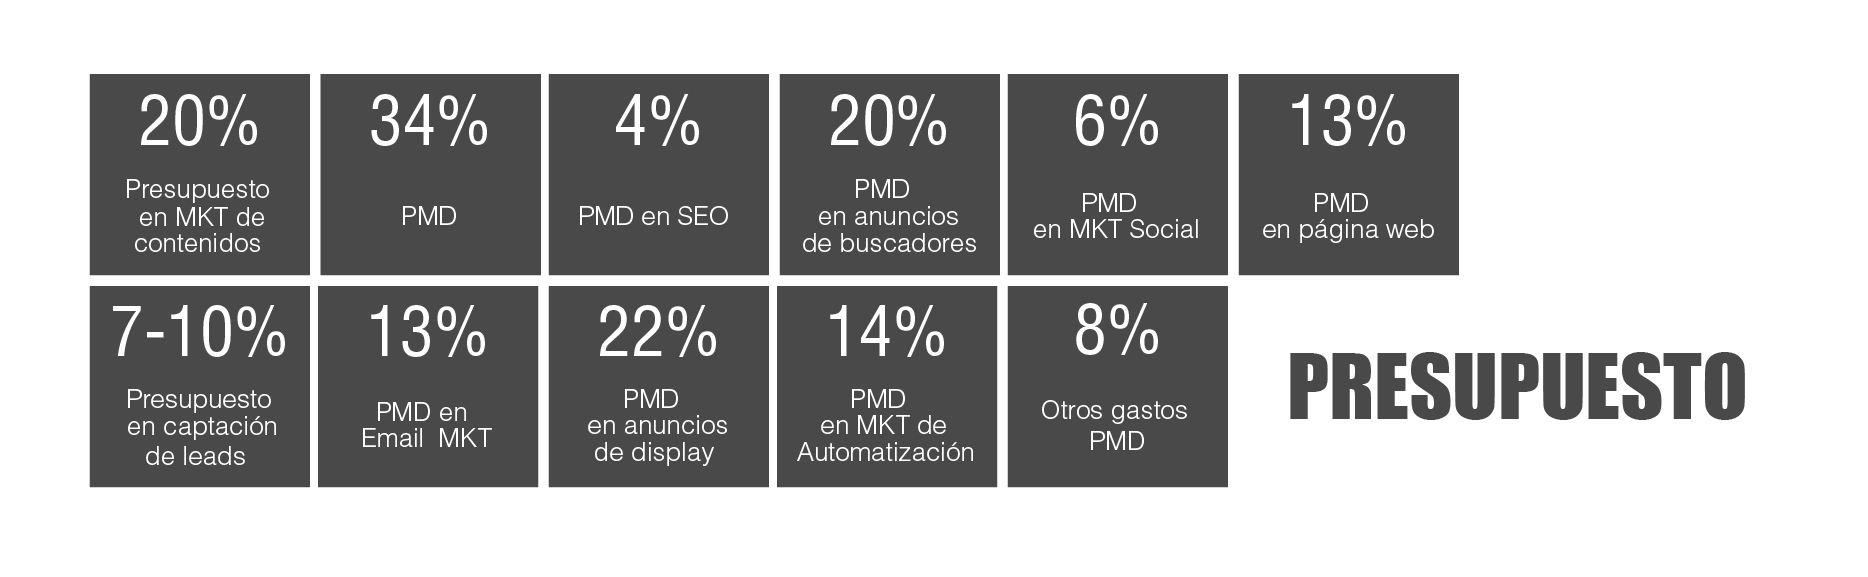 tabla periódica de marketing digital B2B: Presupuesto